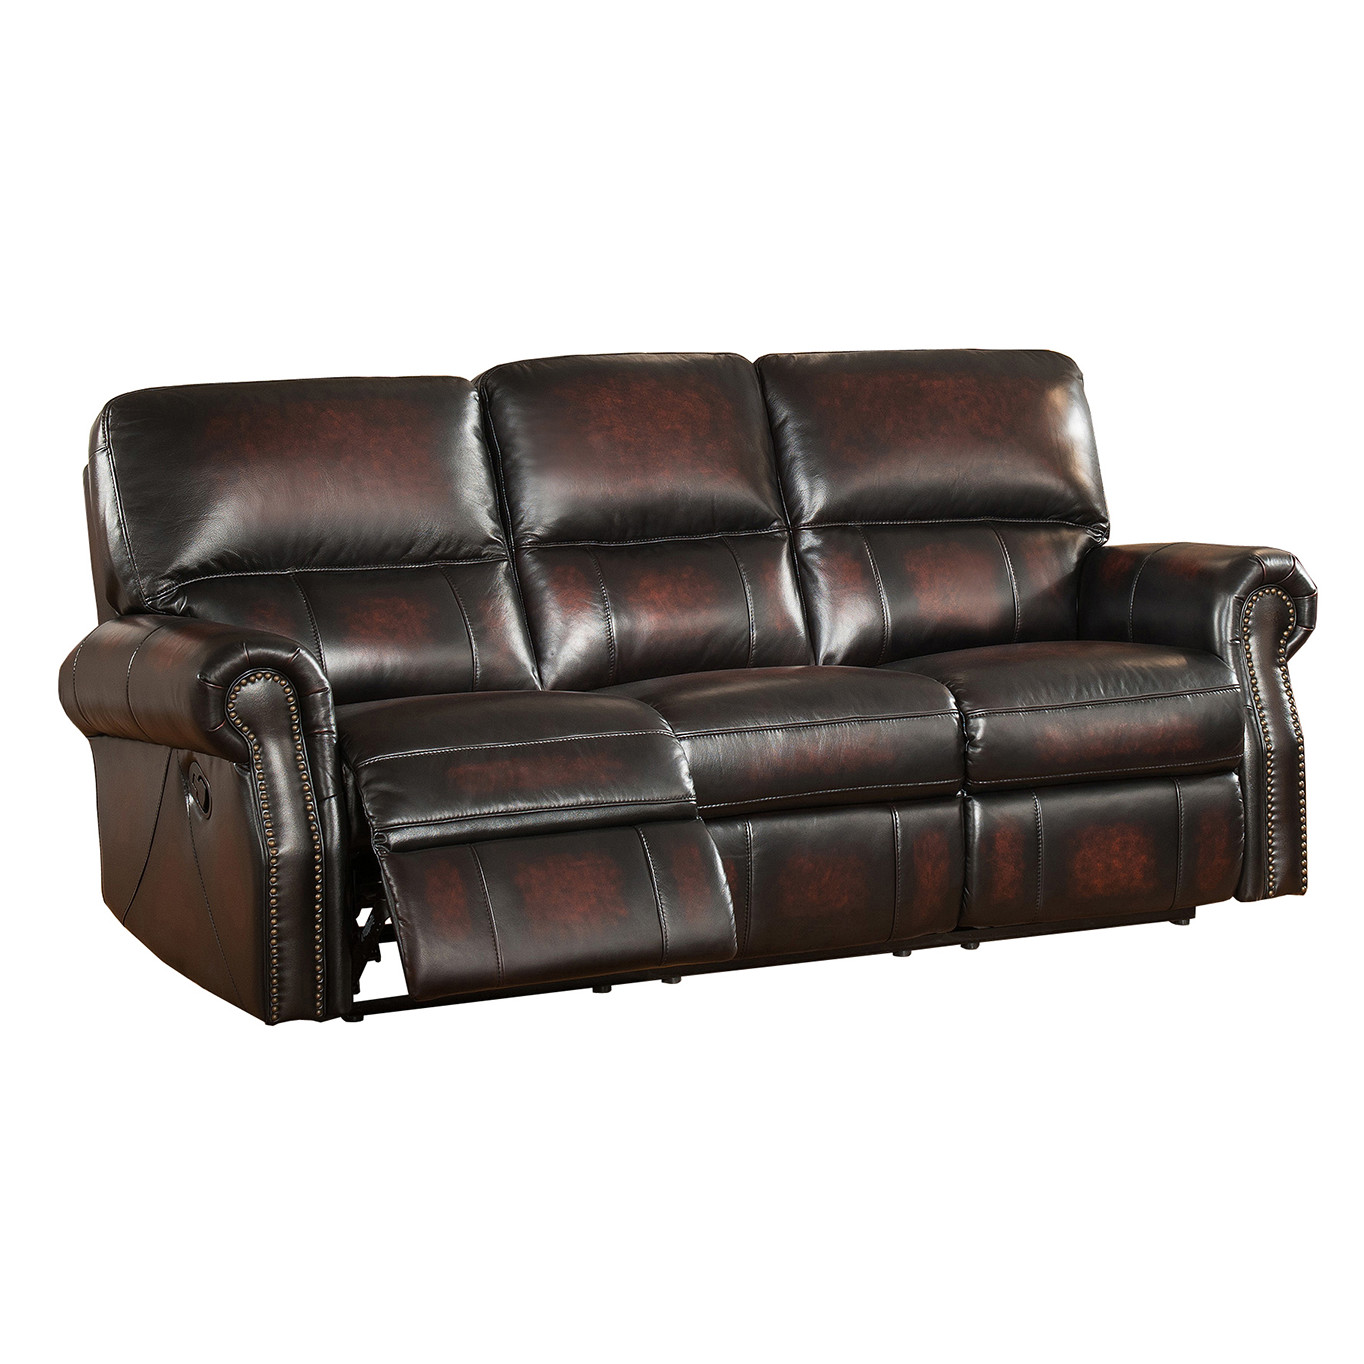 Kimberly leather recliner sofa canadian liquidation 2008 for Liquidation sofa